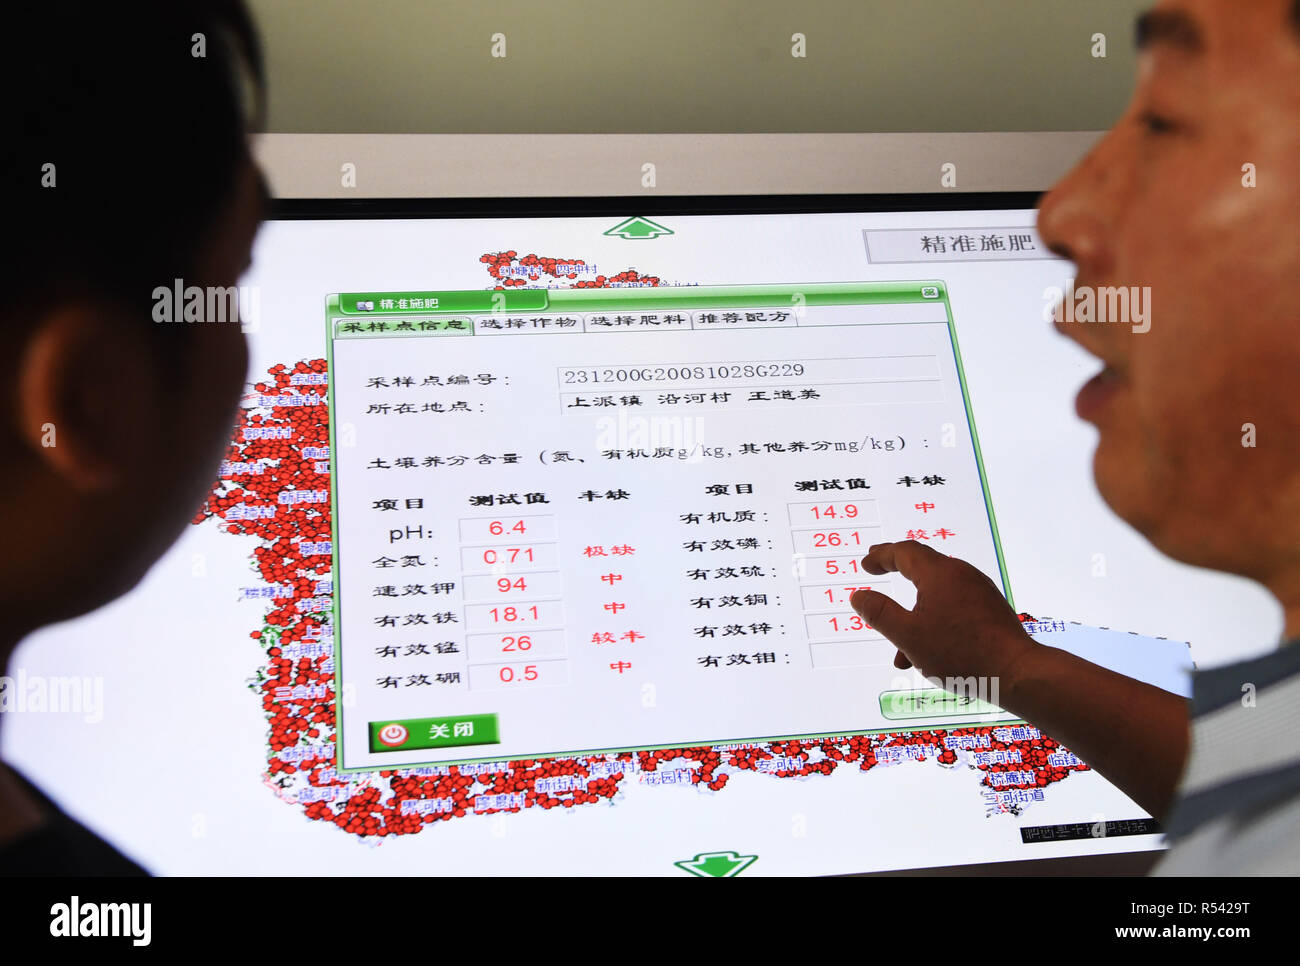 Beijing, China's Anhui Province. 2nd Apr, 2018. A technician explains the results of soil examination and the corresponding fertilizing plan to a farmer in Feixi County of Hefei, east China's Anhui Province, April 2, 2018. Credit: Liu Junxi/Xinhua/Alamy Live News - Stock Image